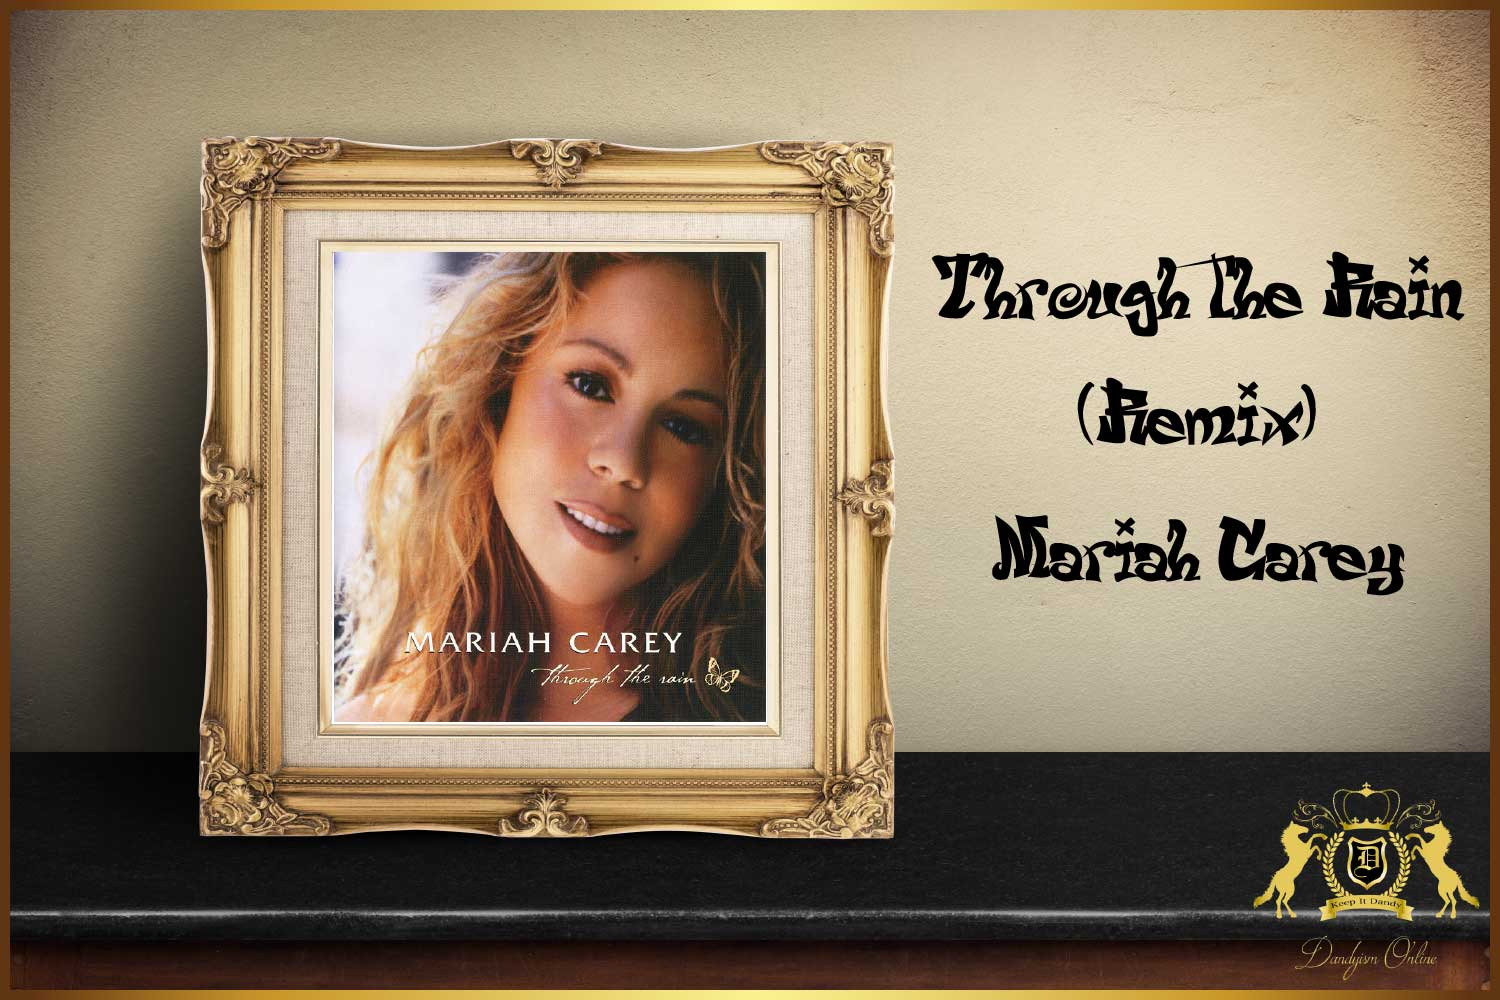 JoeとKelly Priceも援護射撃!Mariah Careyの名曲『Through The Rain』のリミックス